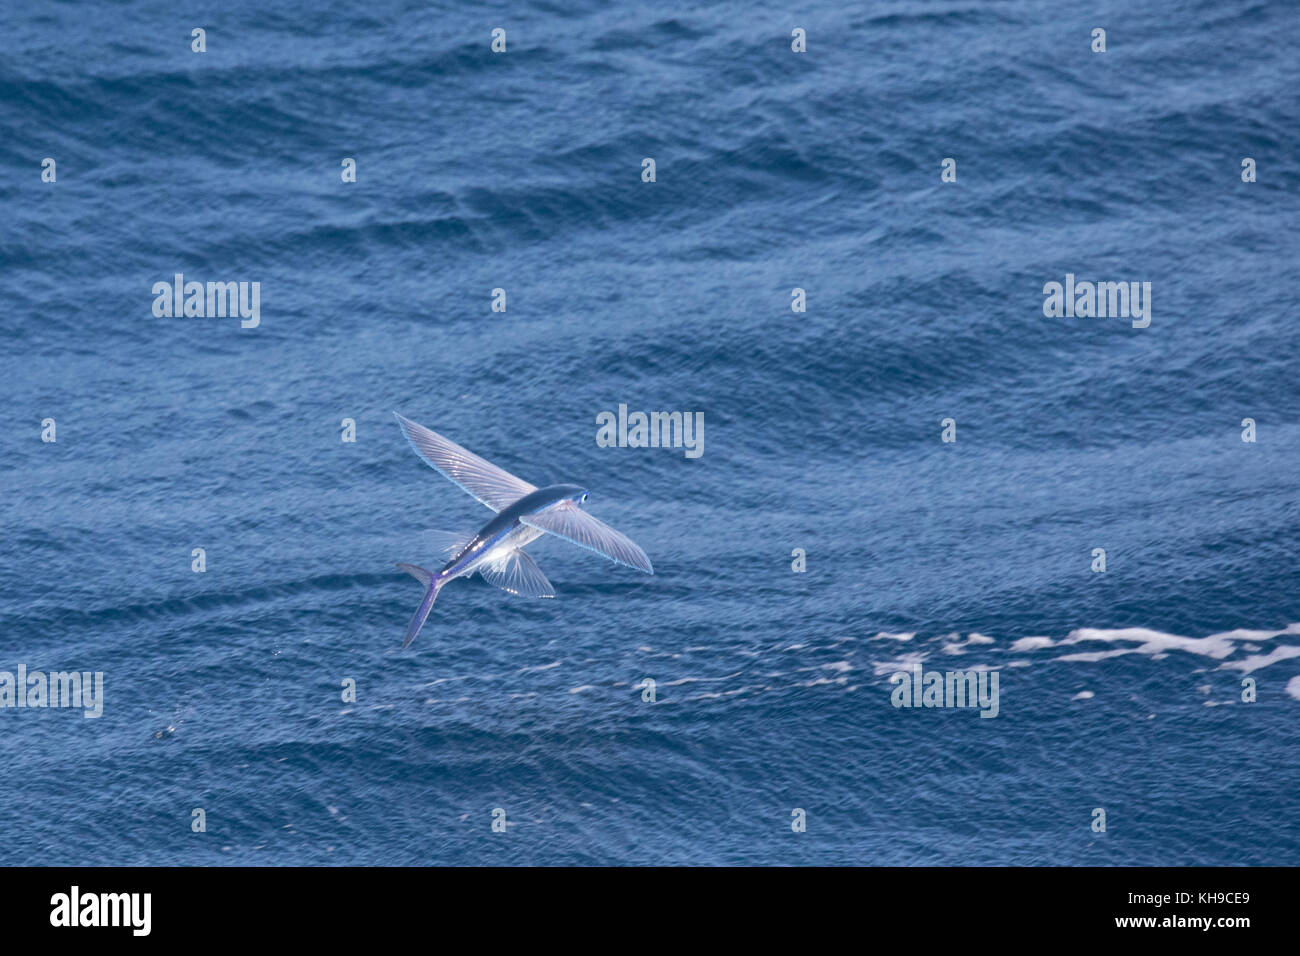 A flying fish with fins spread wide gliding above the surface of the water off the coast of Brazil Stock Photo